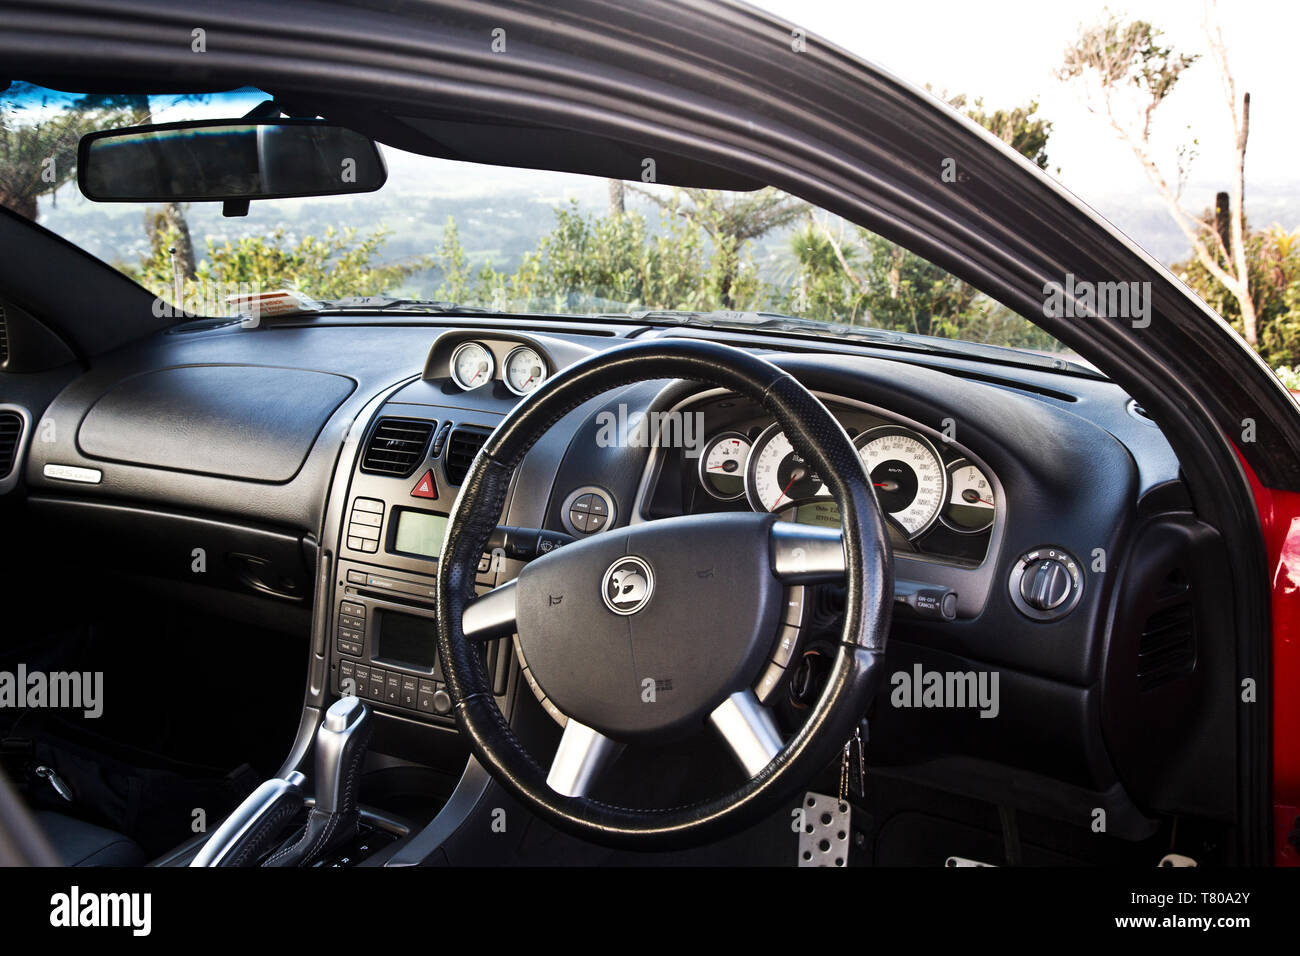 Red Holden Monaro HSV Coupe II 2003 GTO, Vauxhall, Pontiac GTO, Chevrolet Lumina Coupé. Showing the dashboard and front interior with bush. - Stock Image